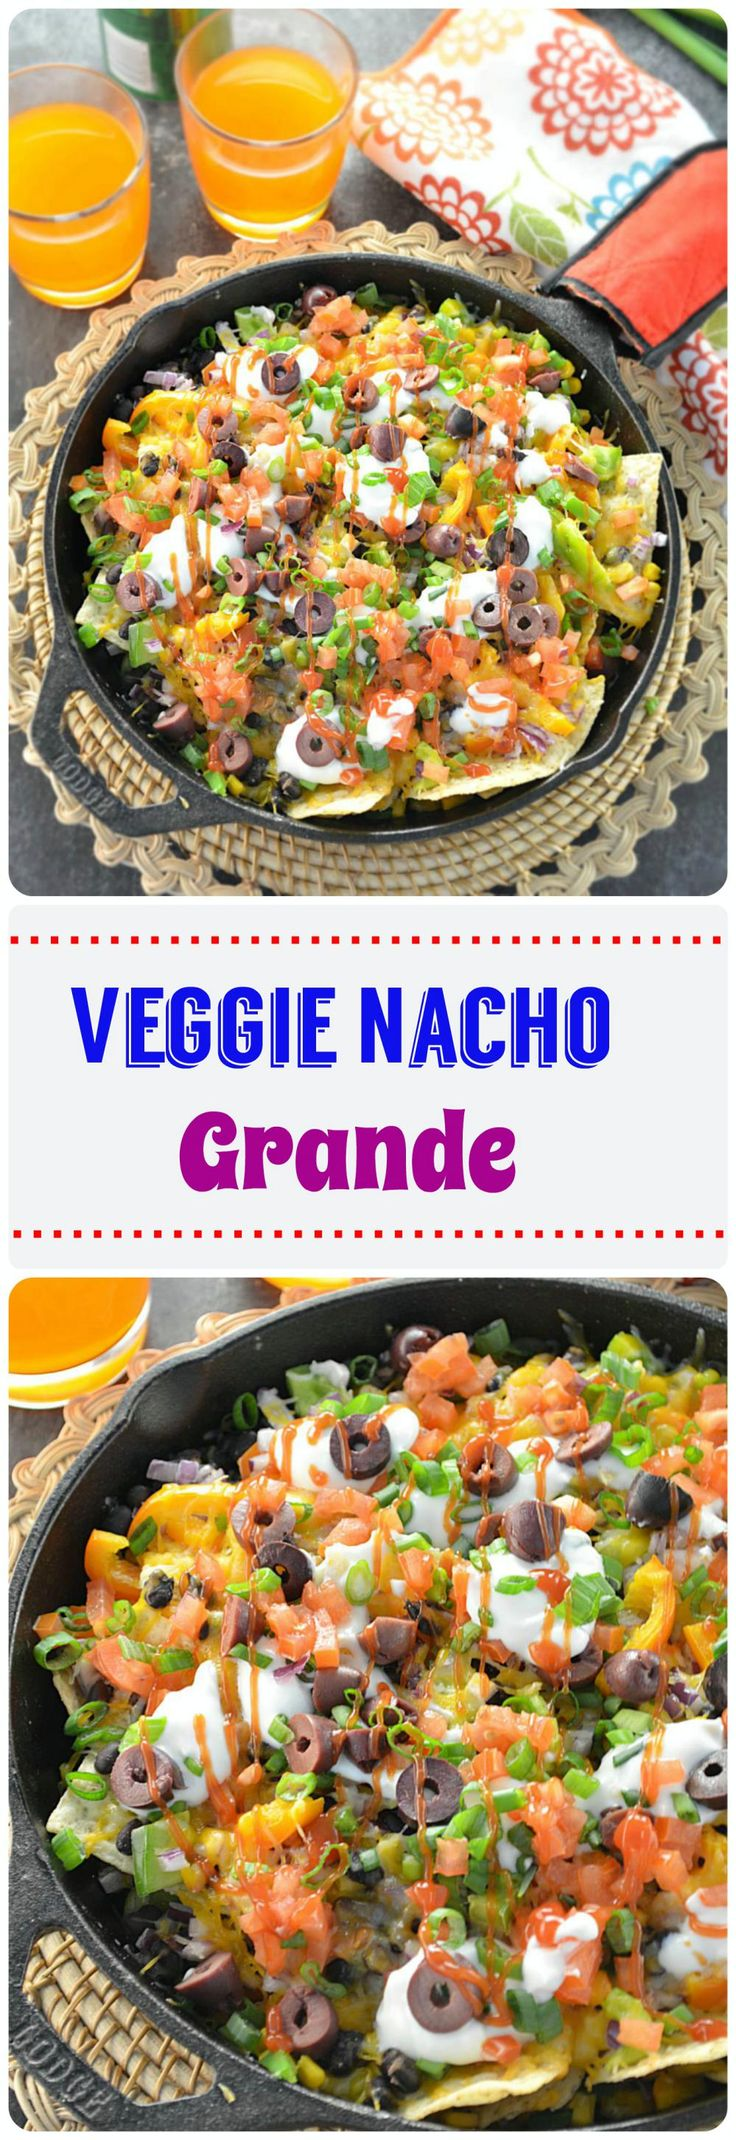 Veggie #Nacho Grande - loaded with veggies, beans and topped with low fat shredded cheese.